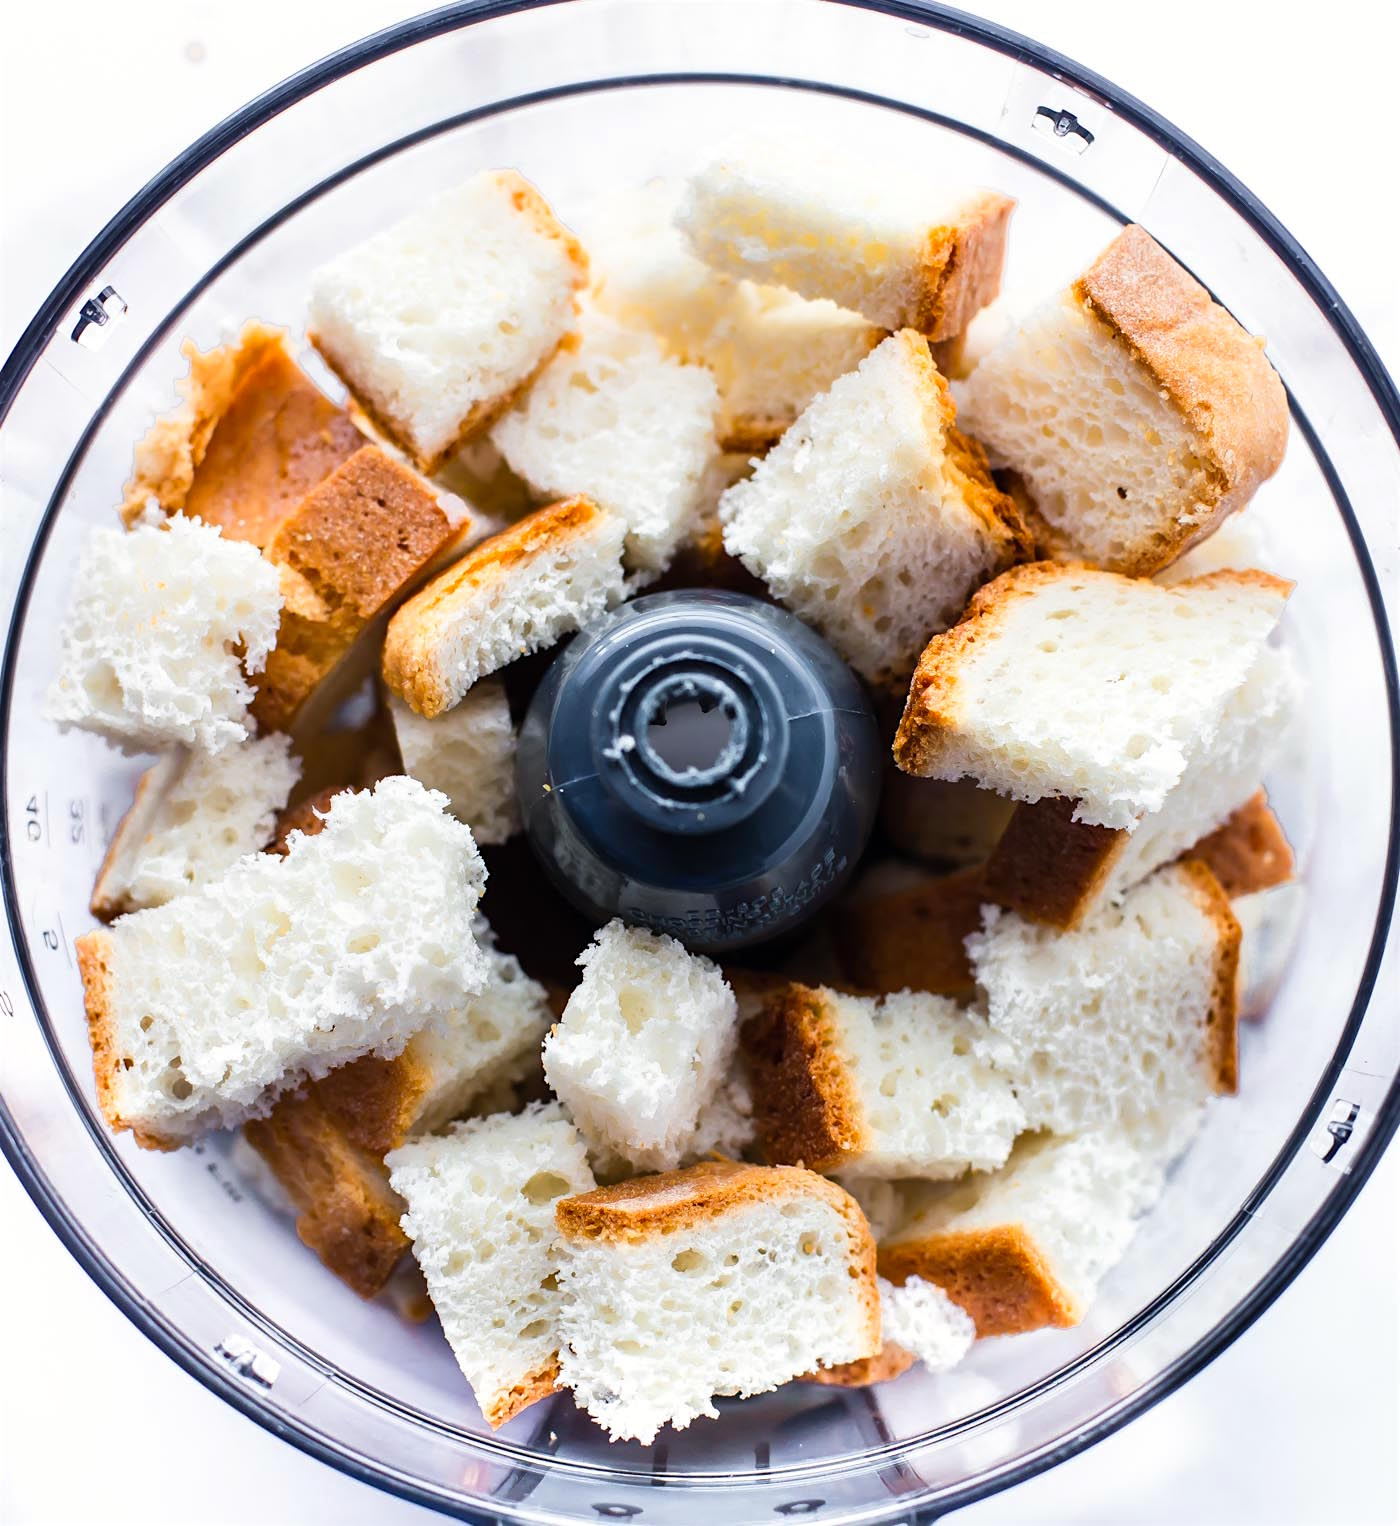 gluten free bread in a food processor